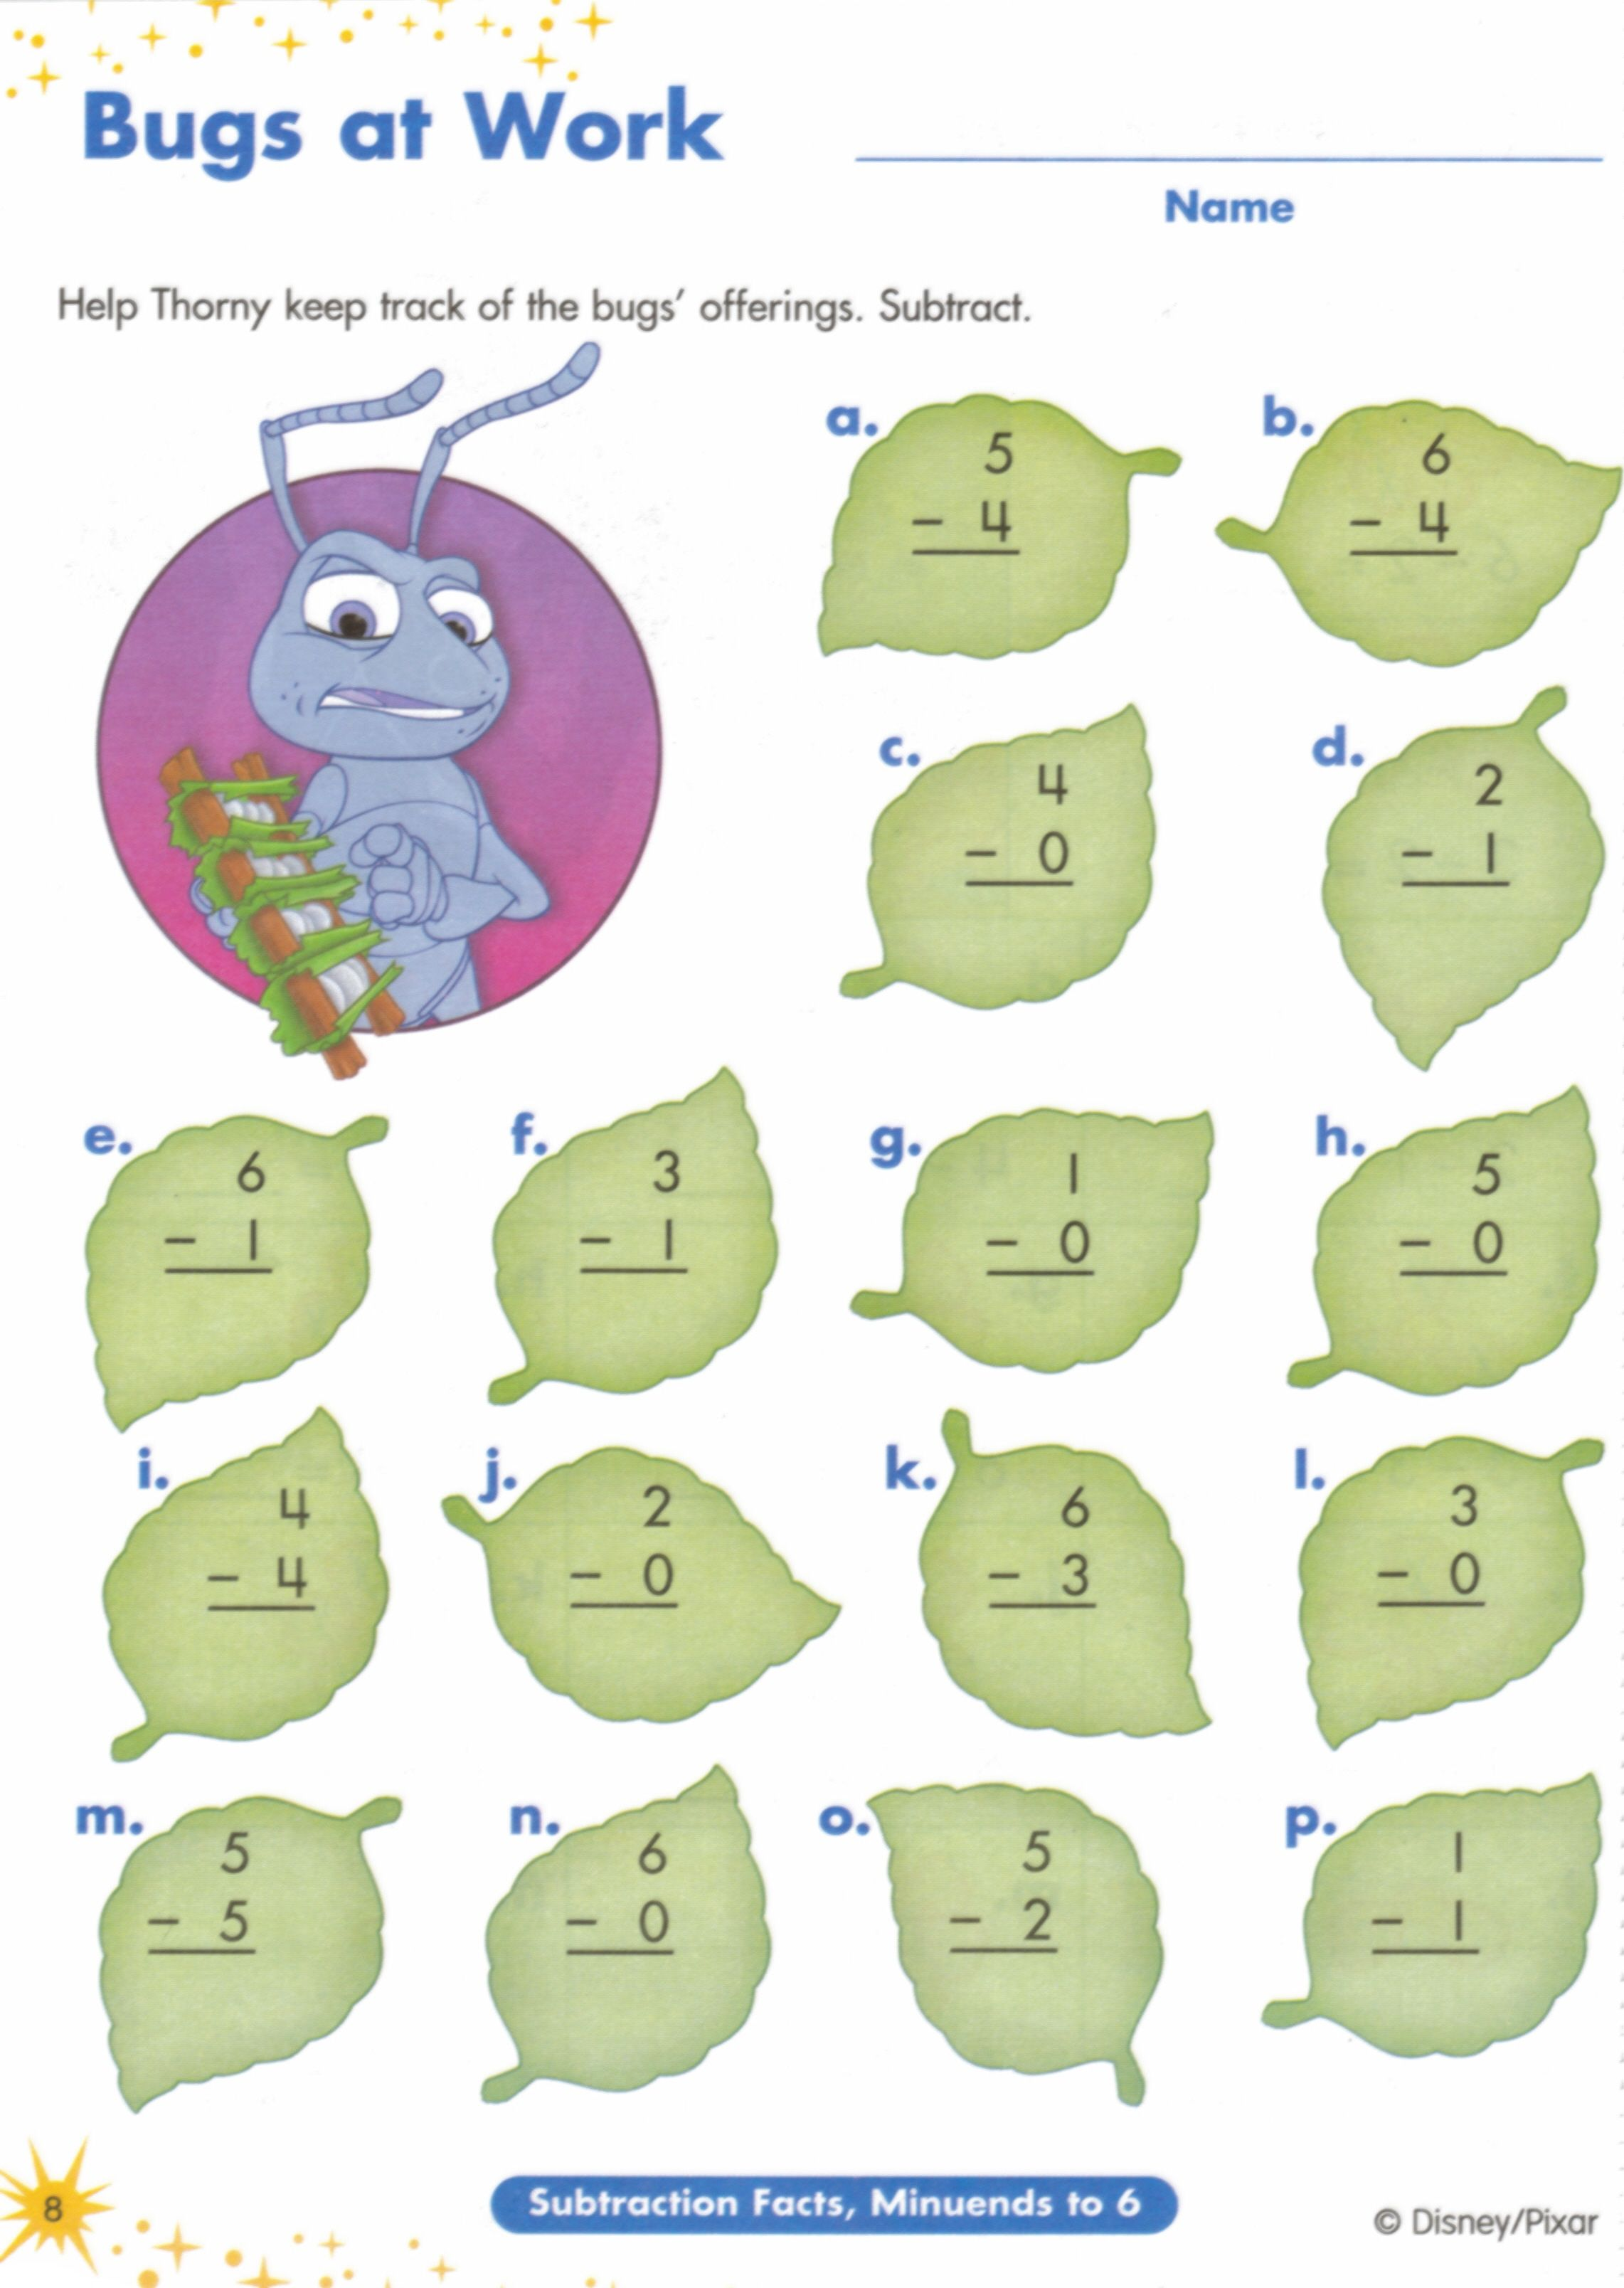 Proatmealus  Winsome  Images About Worksheets On Pinterest  Fun Facts For Kids  With Lovely  Images About Worksheets On Pinterest  Fun Facts For Kids Earth Day Worksheets And Jungles With Alluring Free Worksheets For Th Grade Also Rock Classification Worksheet In Addition Prepositional Phrase Worksheet Th Grade And Greater Than Less Than Equal To Worksheet As Well As Combine Multiple Excel Files Into One Worksheet Additionally Inequalities Worksheet Th Grade From Pinterestcom With Proatmealus  Lovely  Images About Worksheets On Pinterest  Fun Facts For Kids  With Alluring  Images About Worksheets On Pinterest  Fun Facts For Kids Earth Day Worksheets And Jungles And Winsome Free Worksheets For Th Grade Also Rock Classification Worksheet In Addition Prepositional Phrase Worksheet Th Grade From Pinterestcom